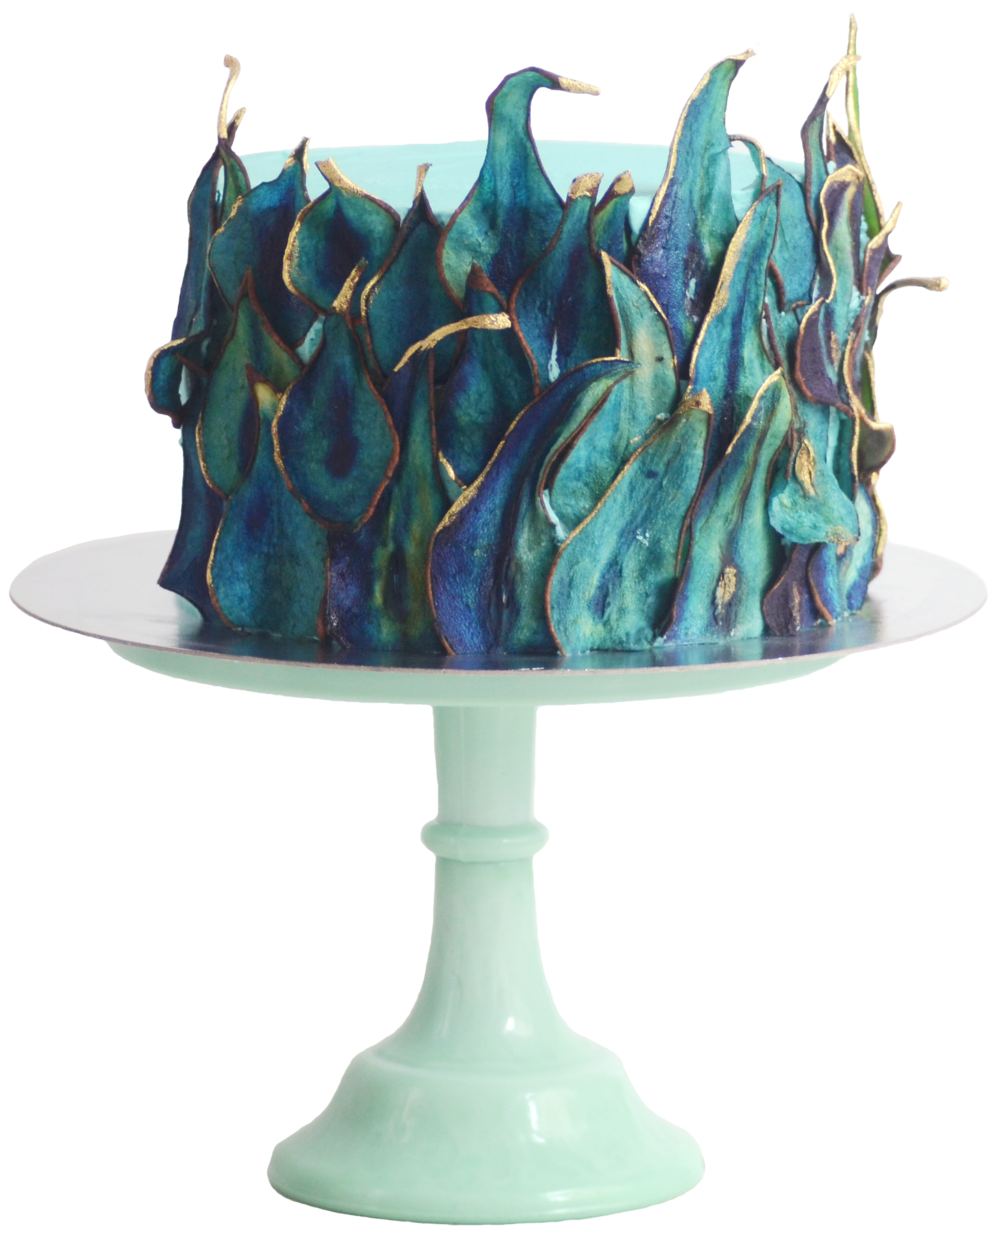 teal-cake-iso.png